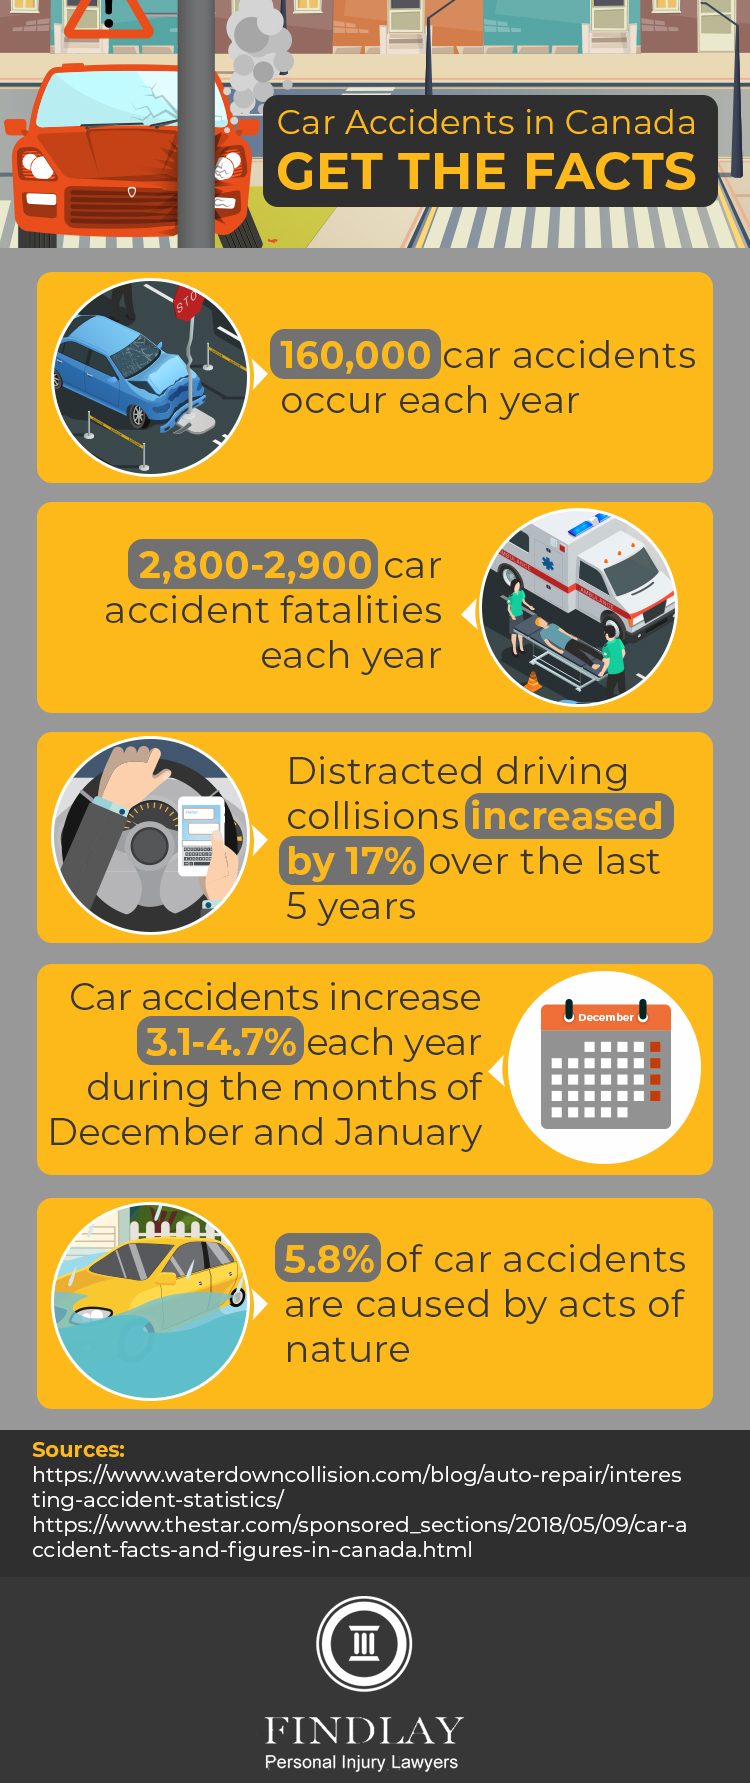 infographic providing statistics about car accidents in Canada